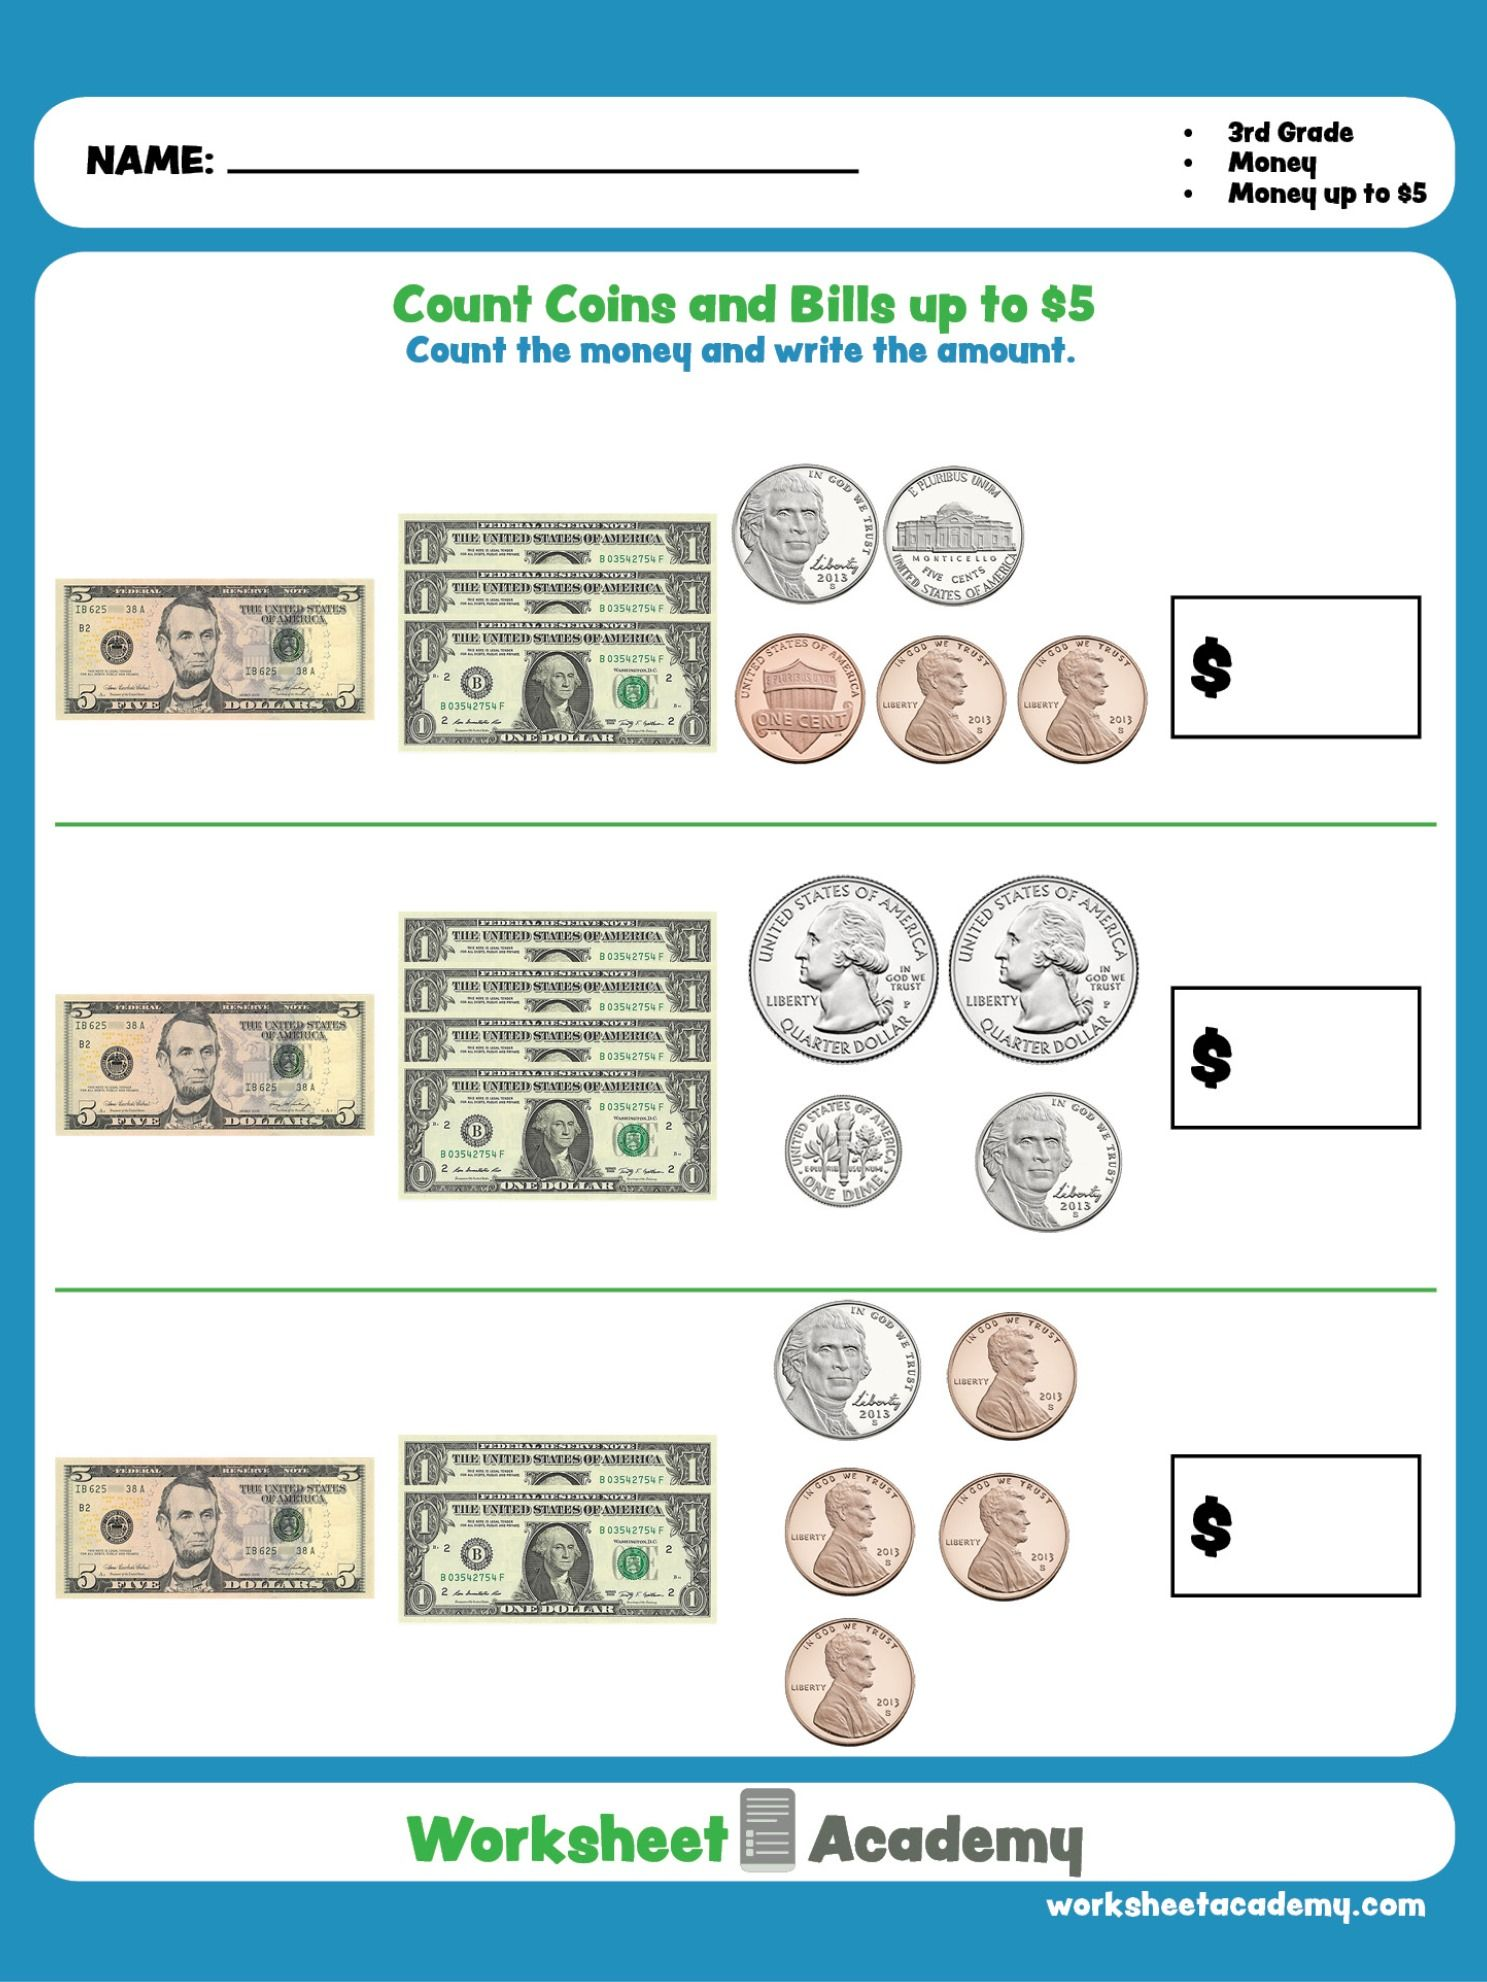 Help Your Student Master Money Counting Up To 5 With This